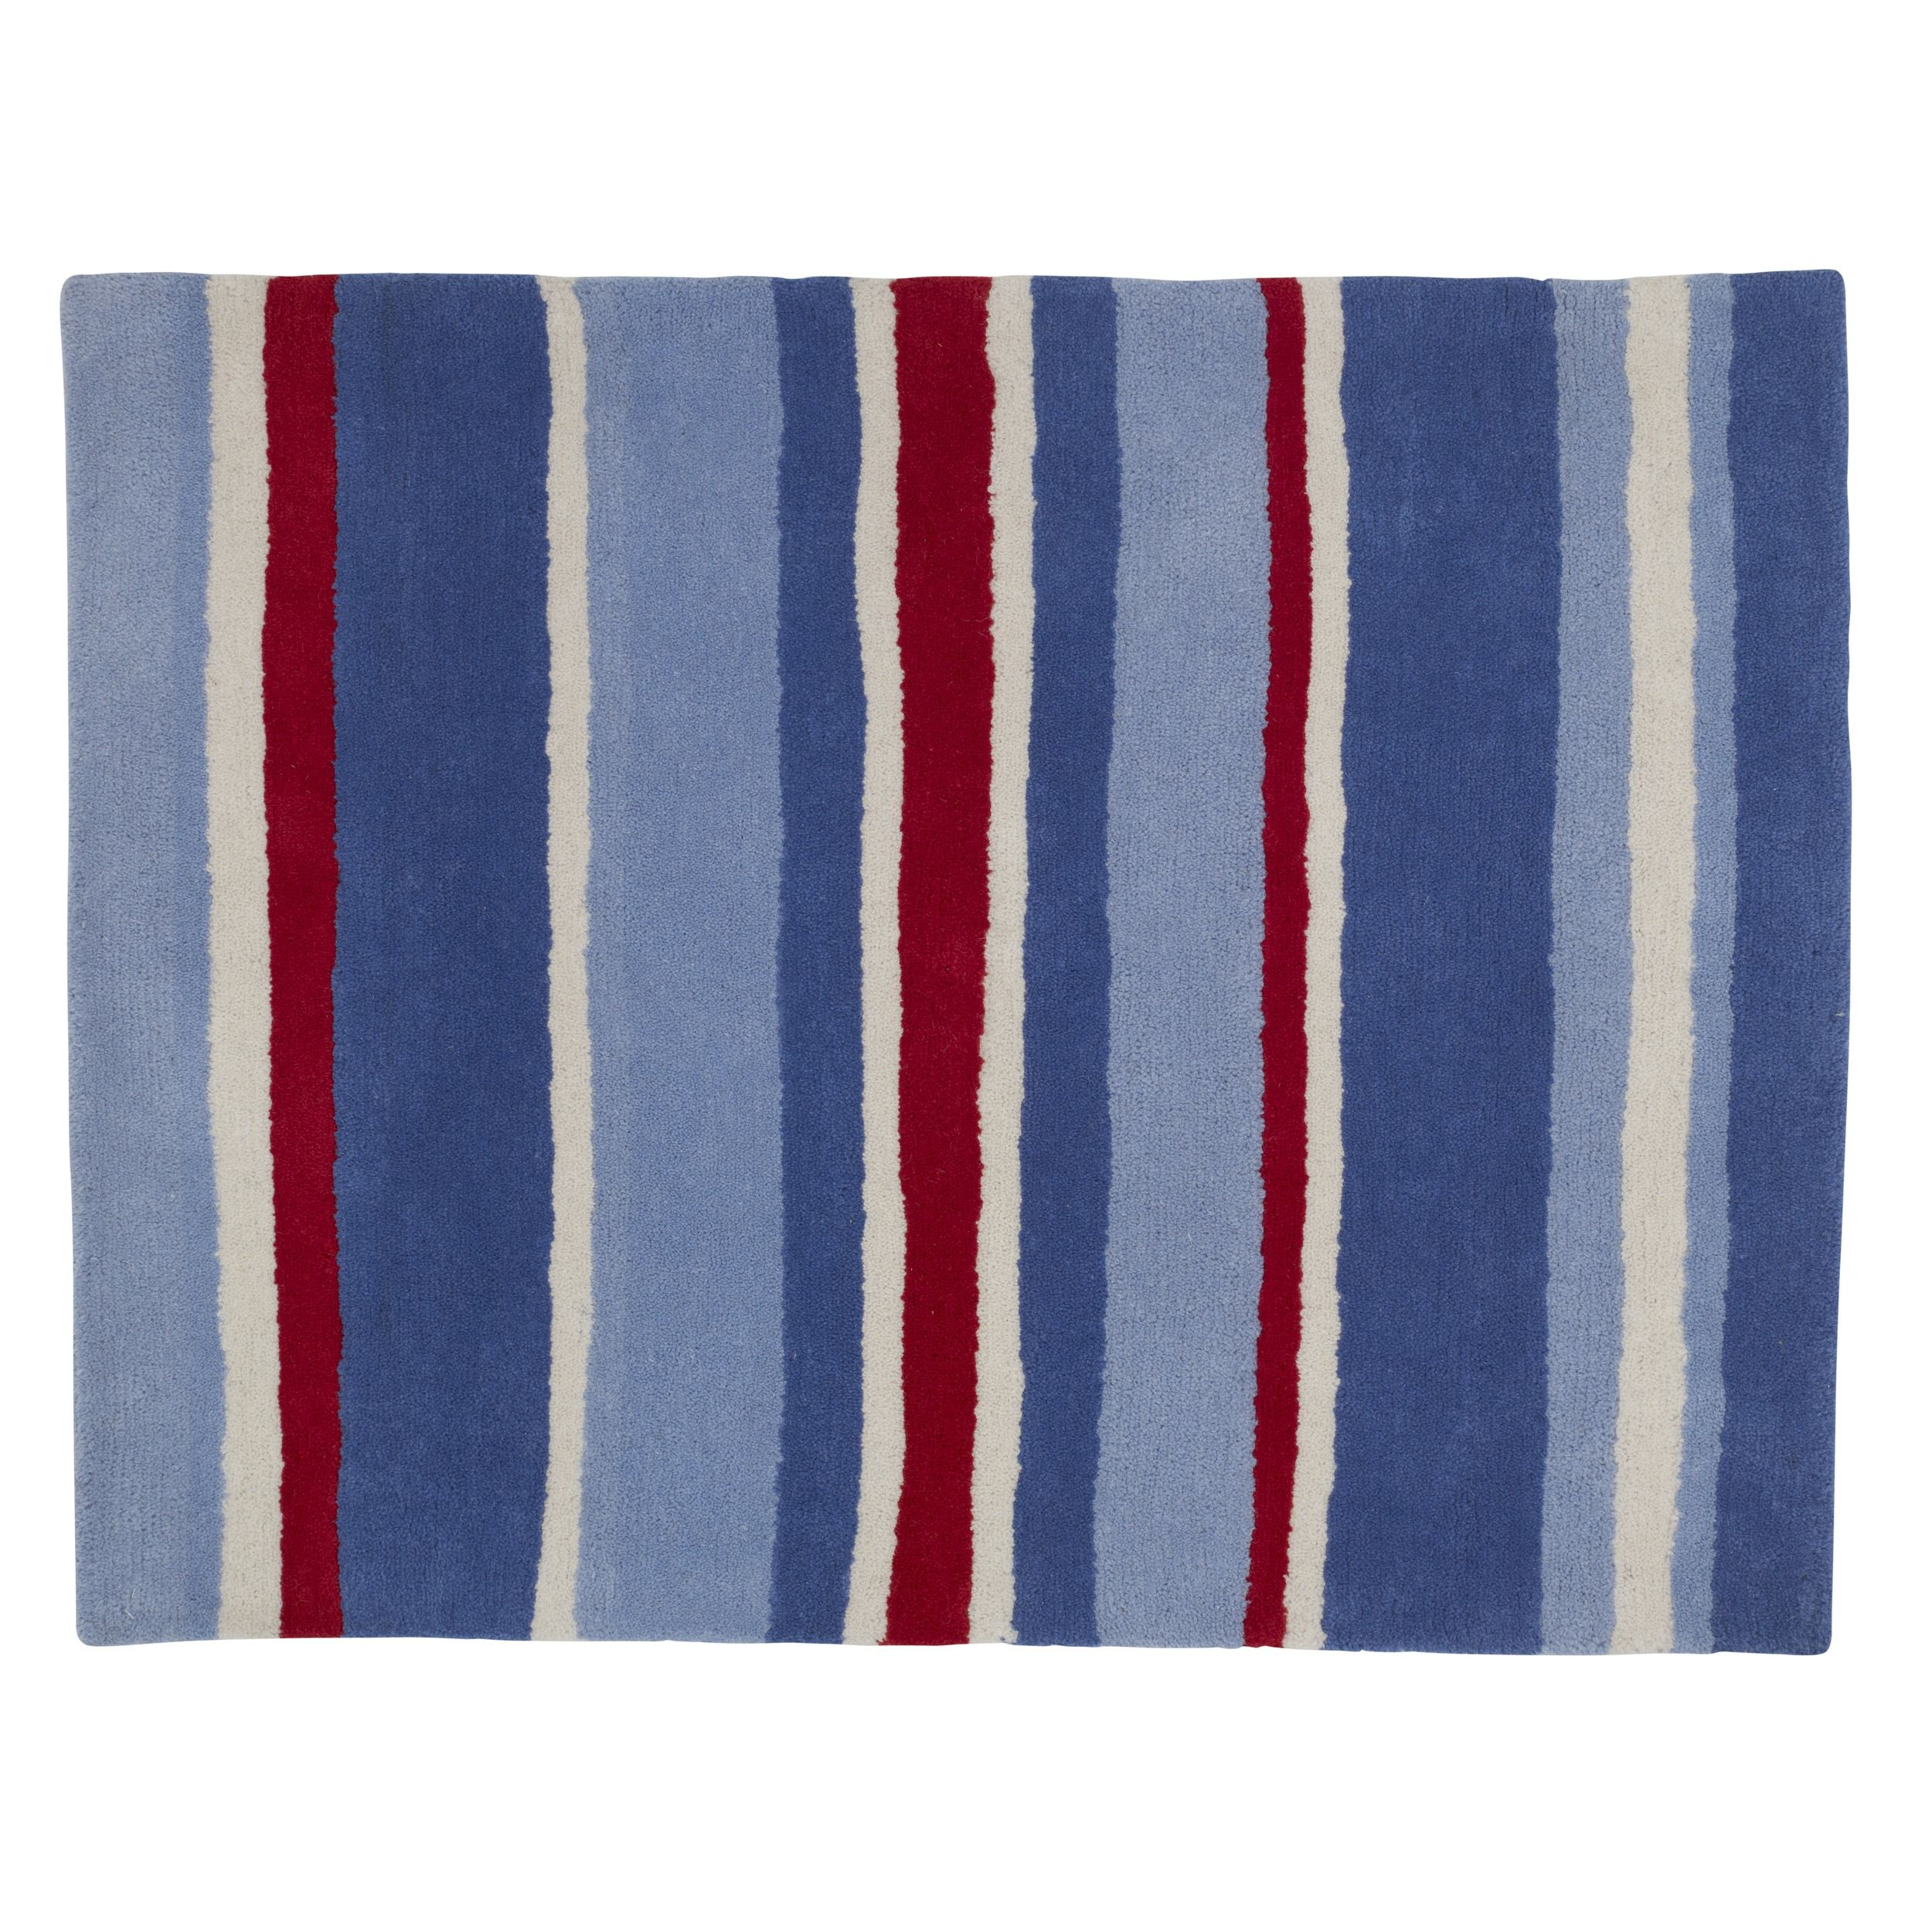 rugs people s elegant nautical nerve excelent rug nauticala furniture agent marvelous best lovely area of size full